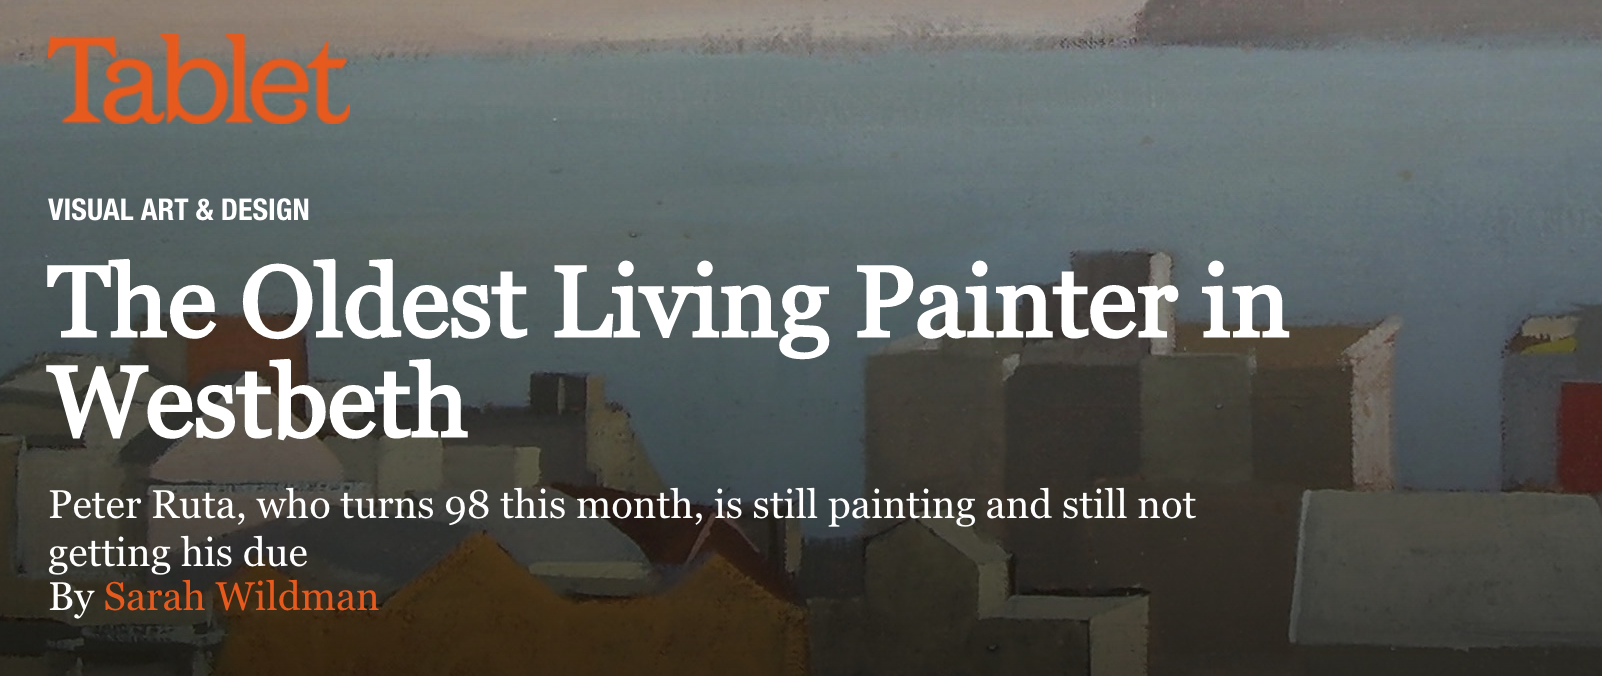 Peter Ruta Oldest Living Painter in Westbeth